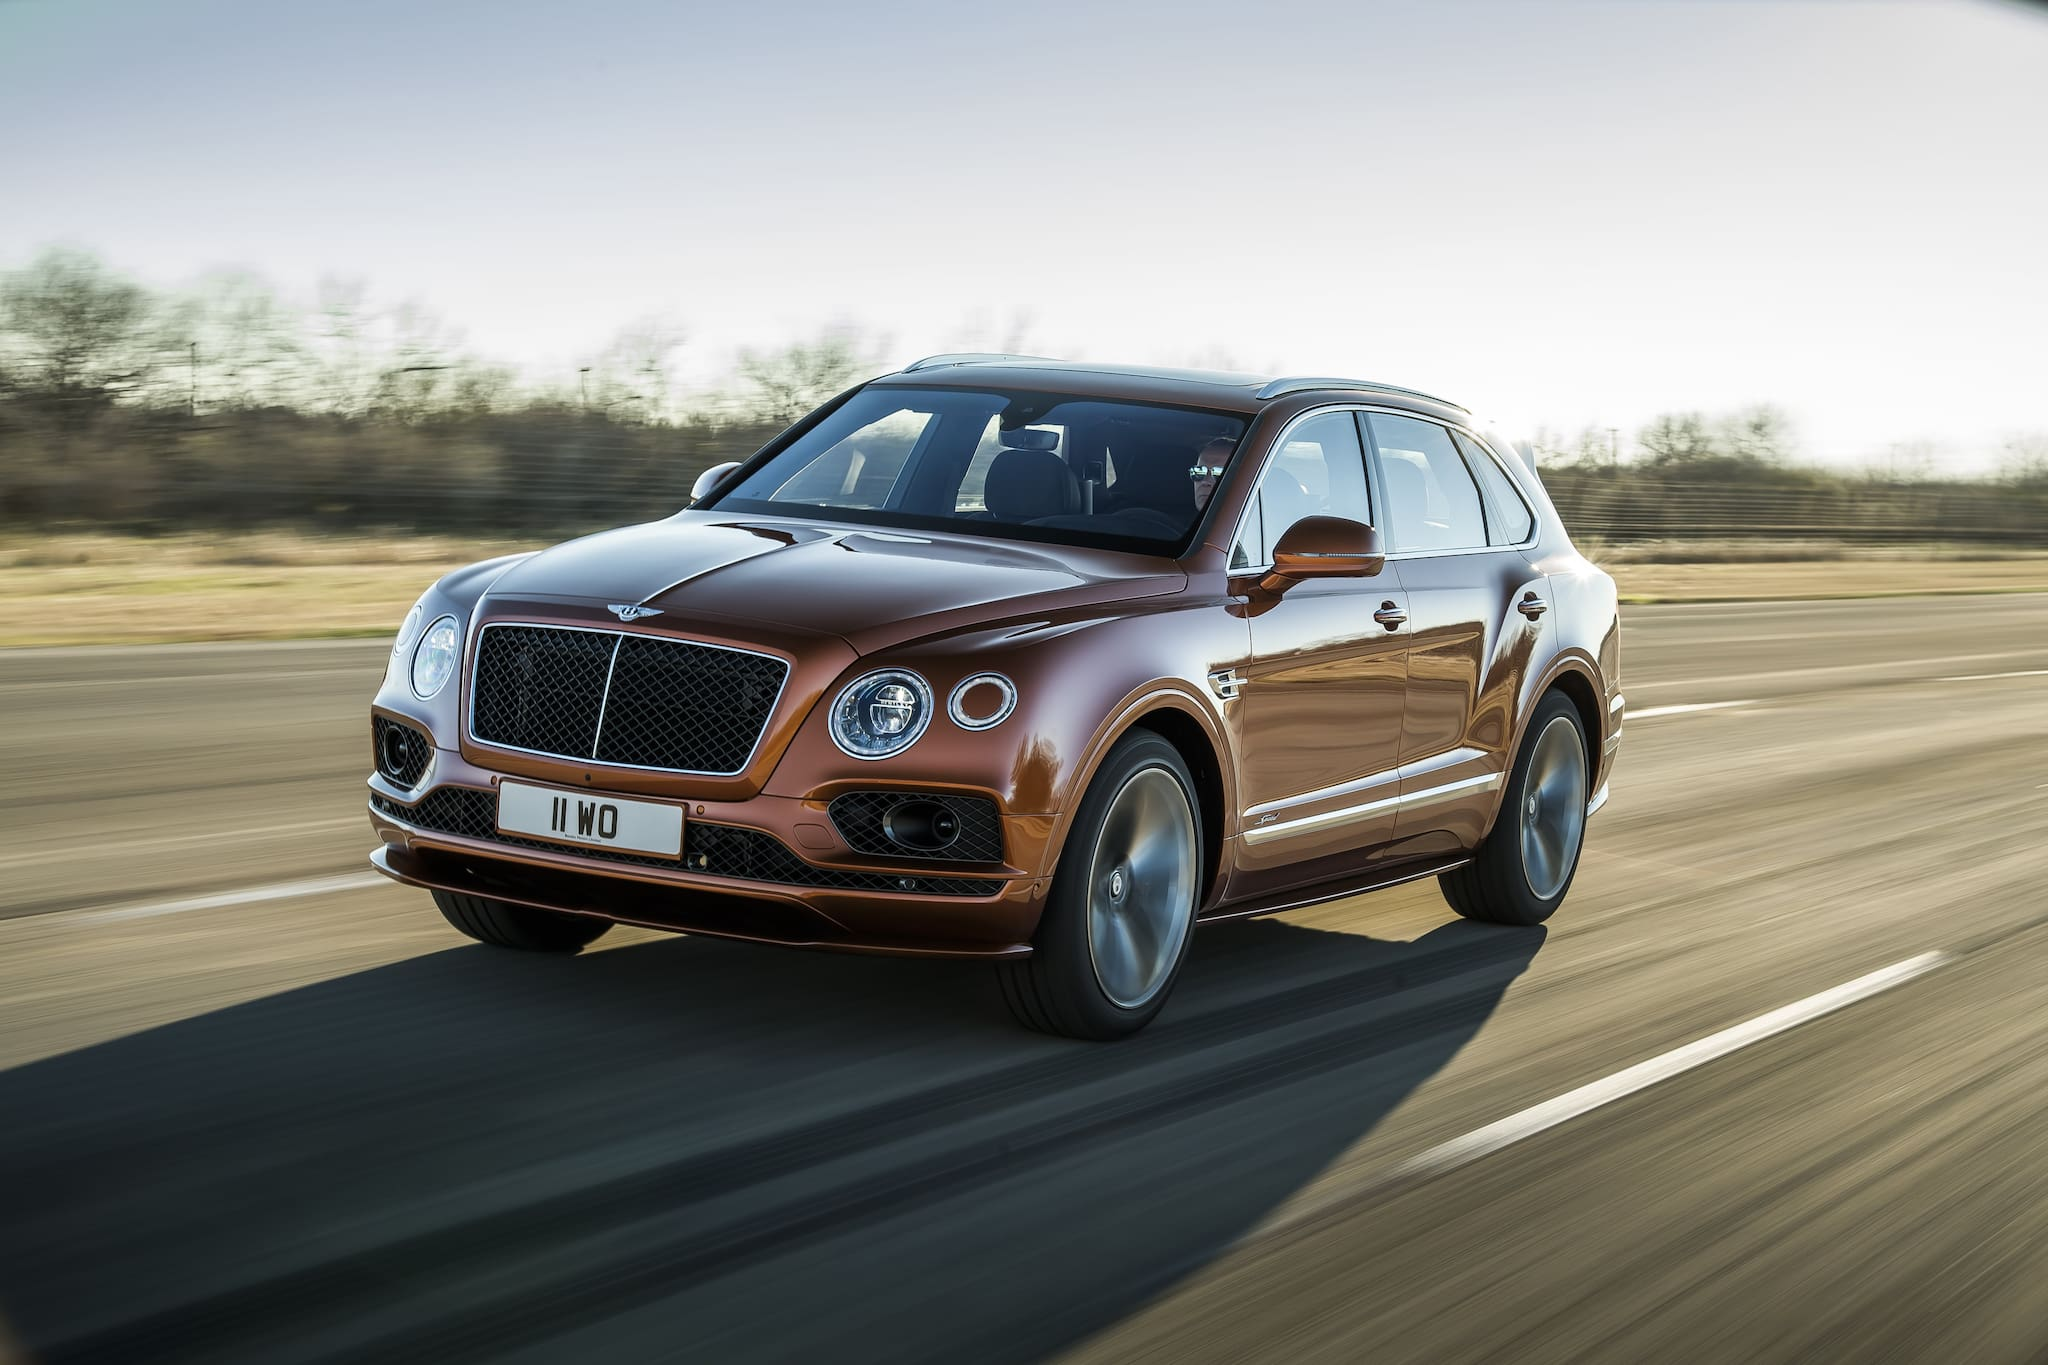 The Bentley Bentayga Speed is now the Fastest SUV in the World